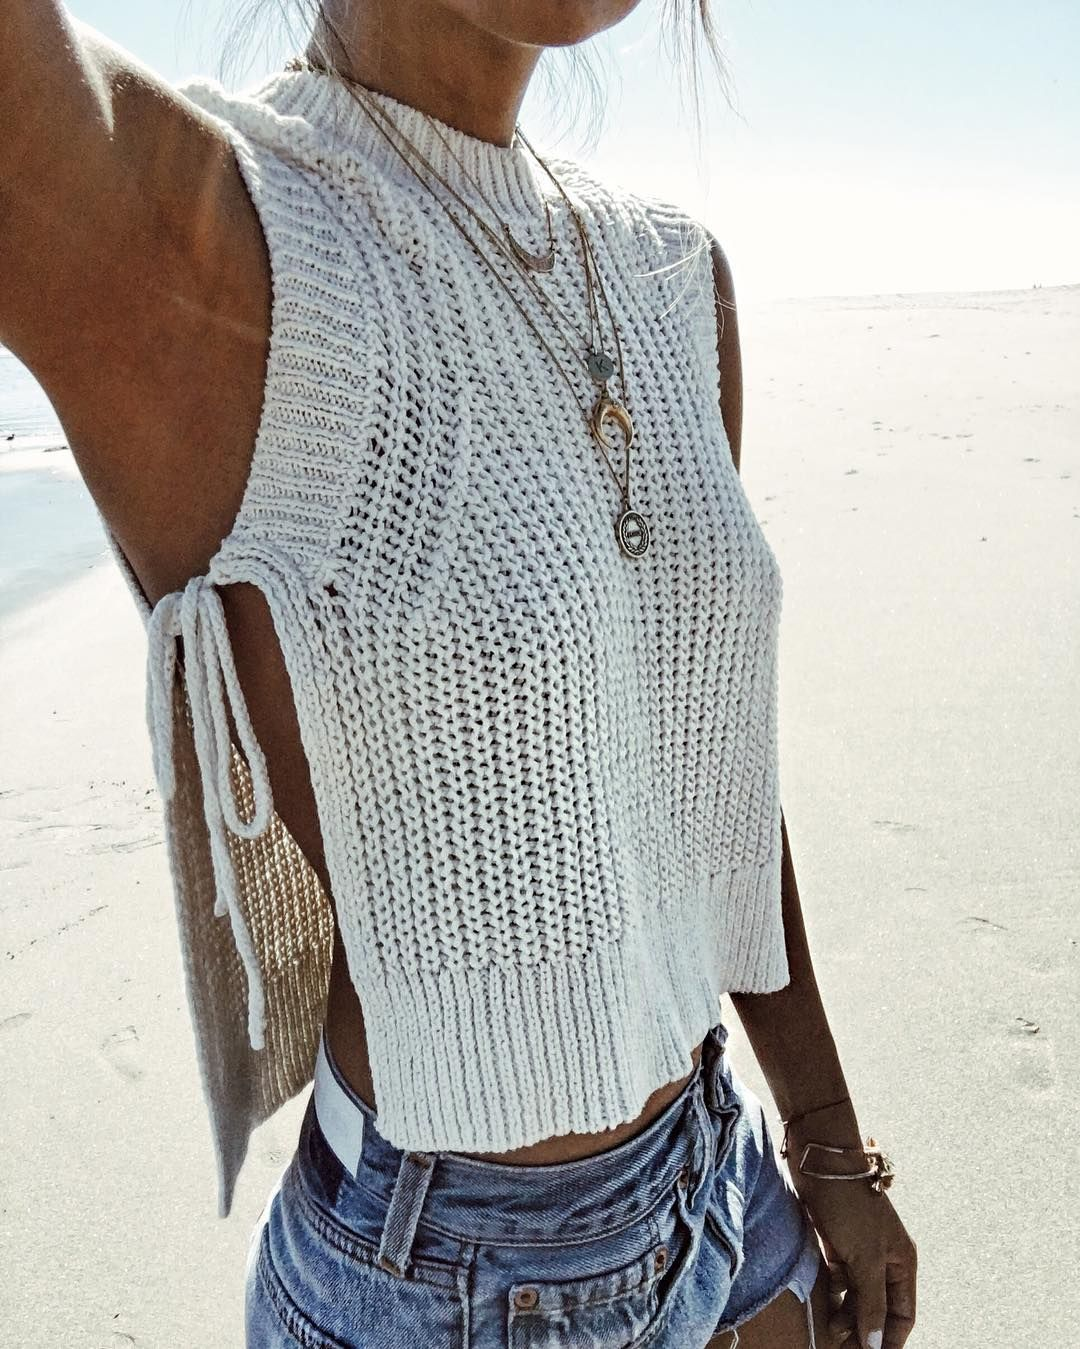 98077e0cdfe14 Sincerely Jules in the Wilfred Belfort Knit.